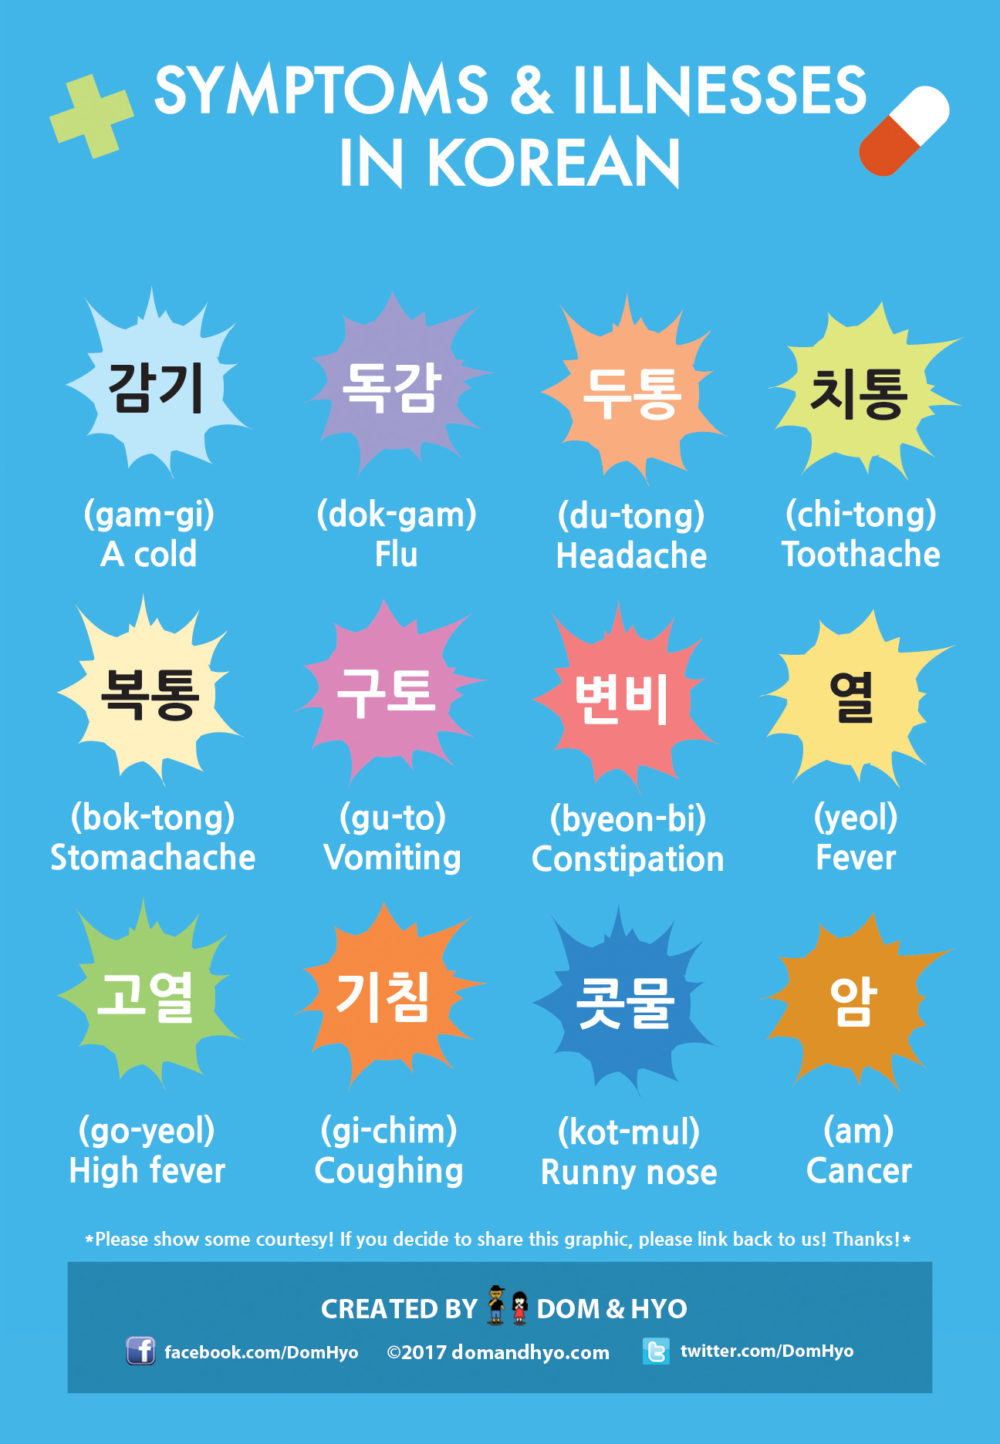 Vocabulary: Symptoms & Illnesses in Korean